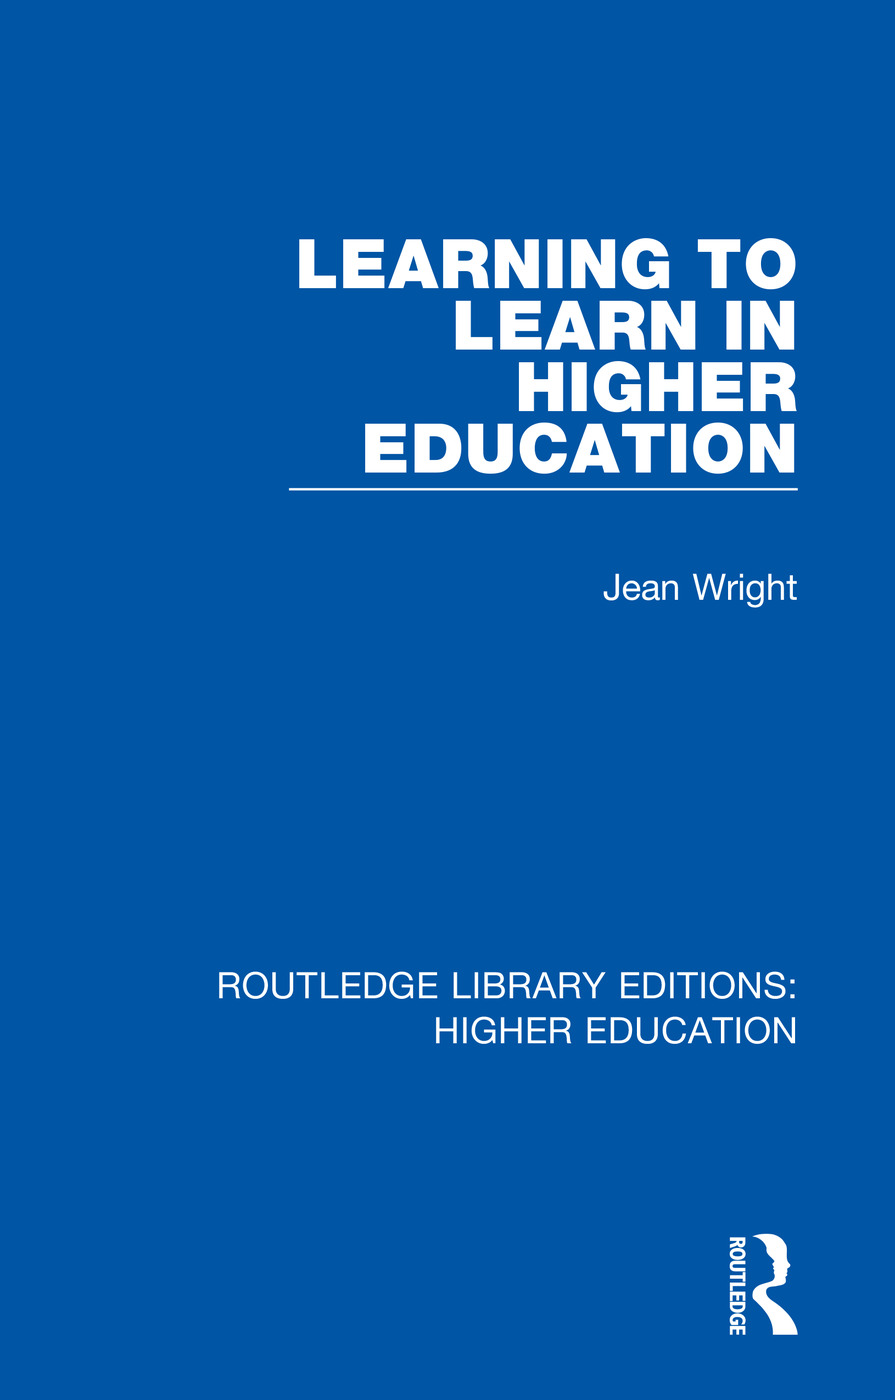 Learning to Learn in Higher Education